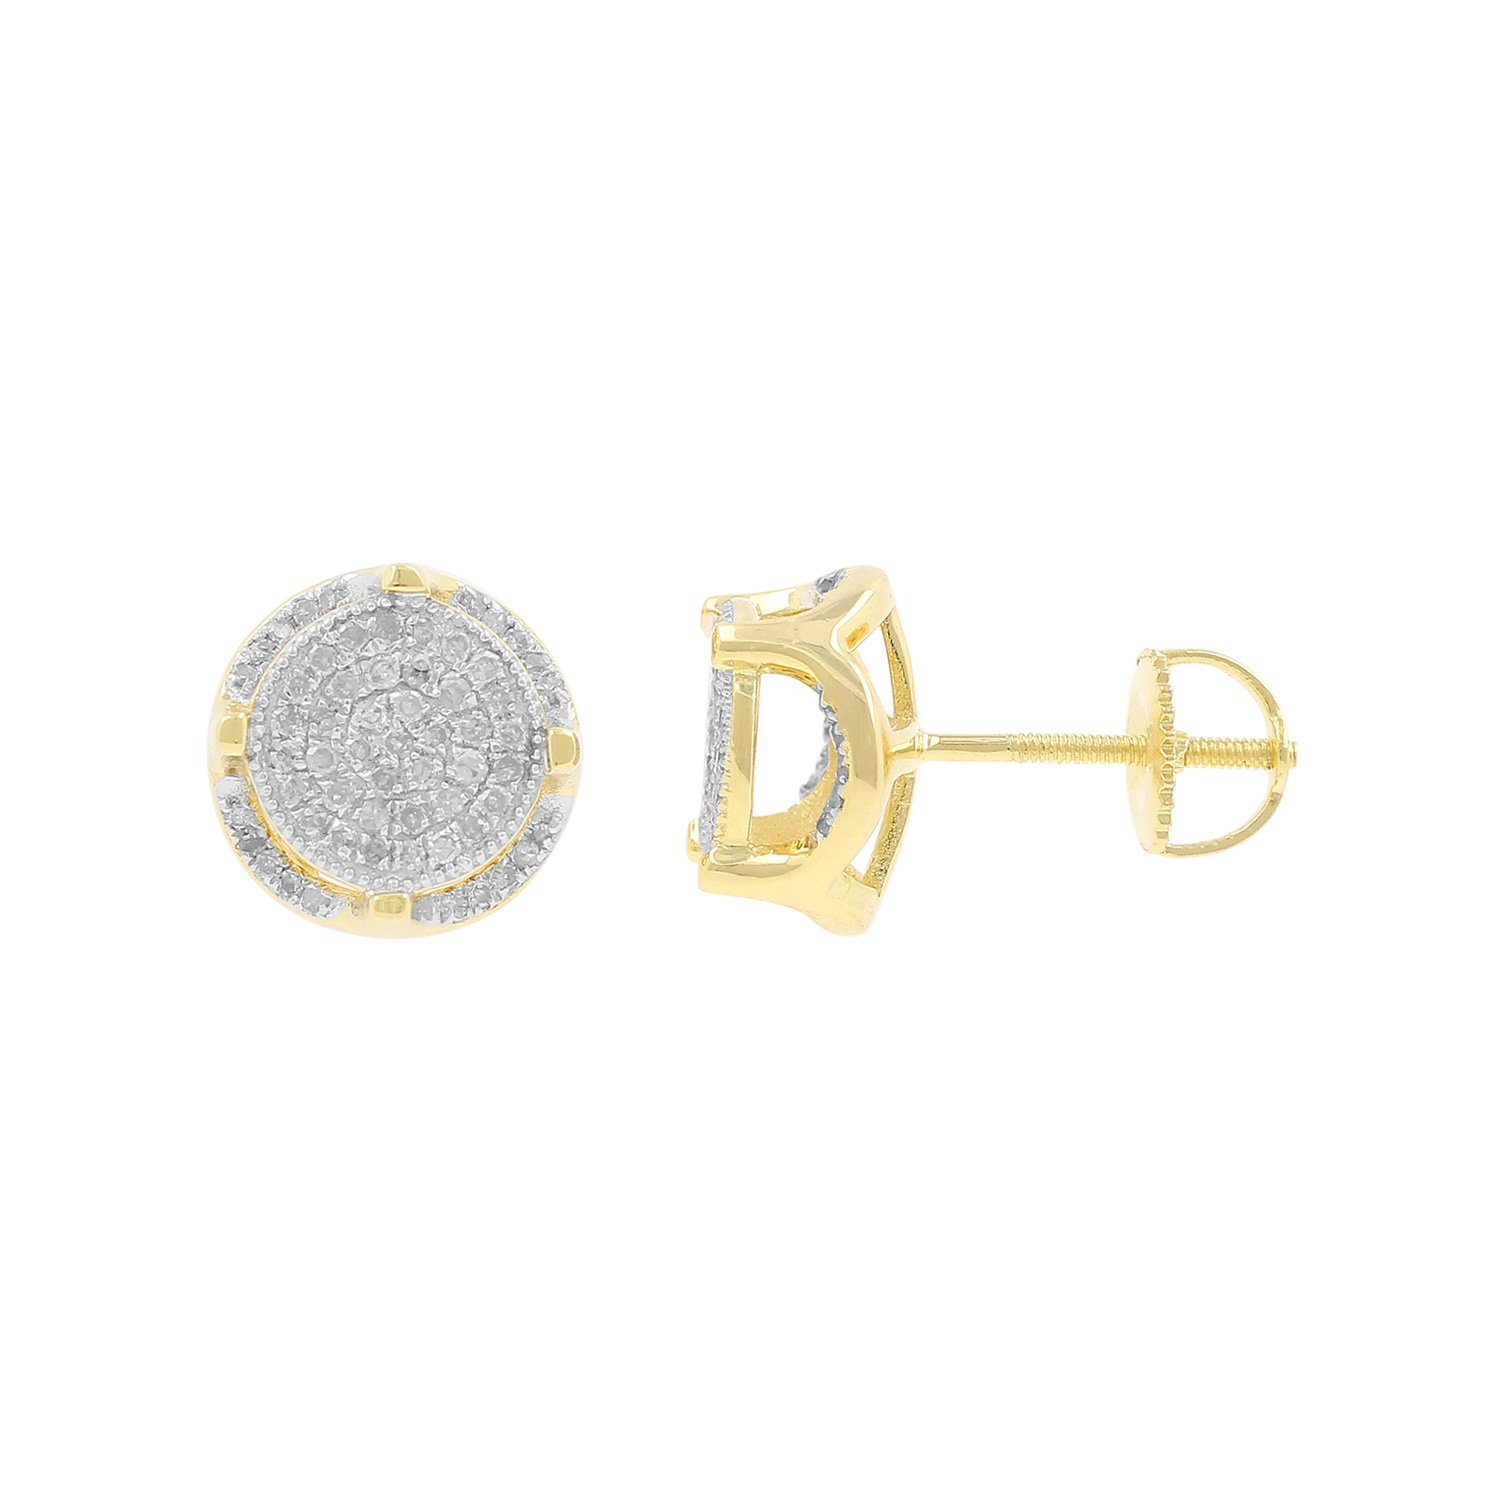 0.40ct Diamond Round Cluster 10.5mm Wide Mens Iced Stud Earrings in Yellow Gold Over 925 Silver-3/8 CTTW (I-J, I2-I3)